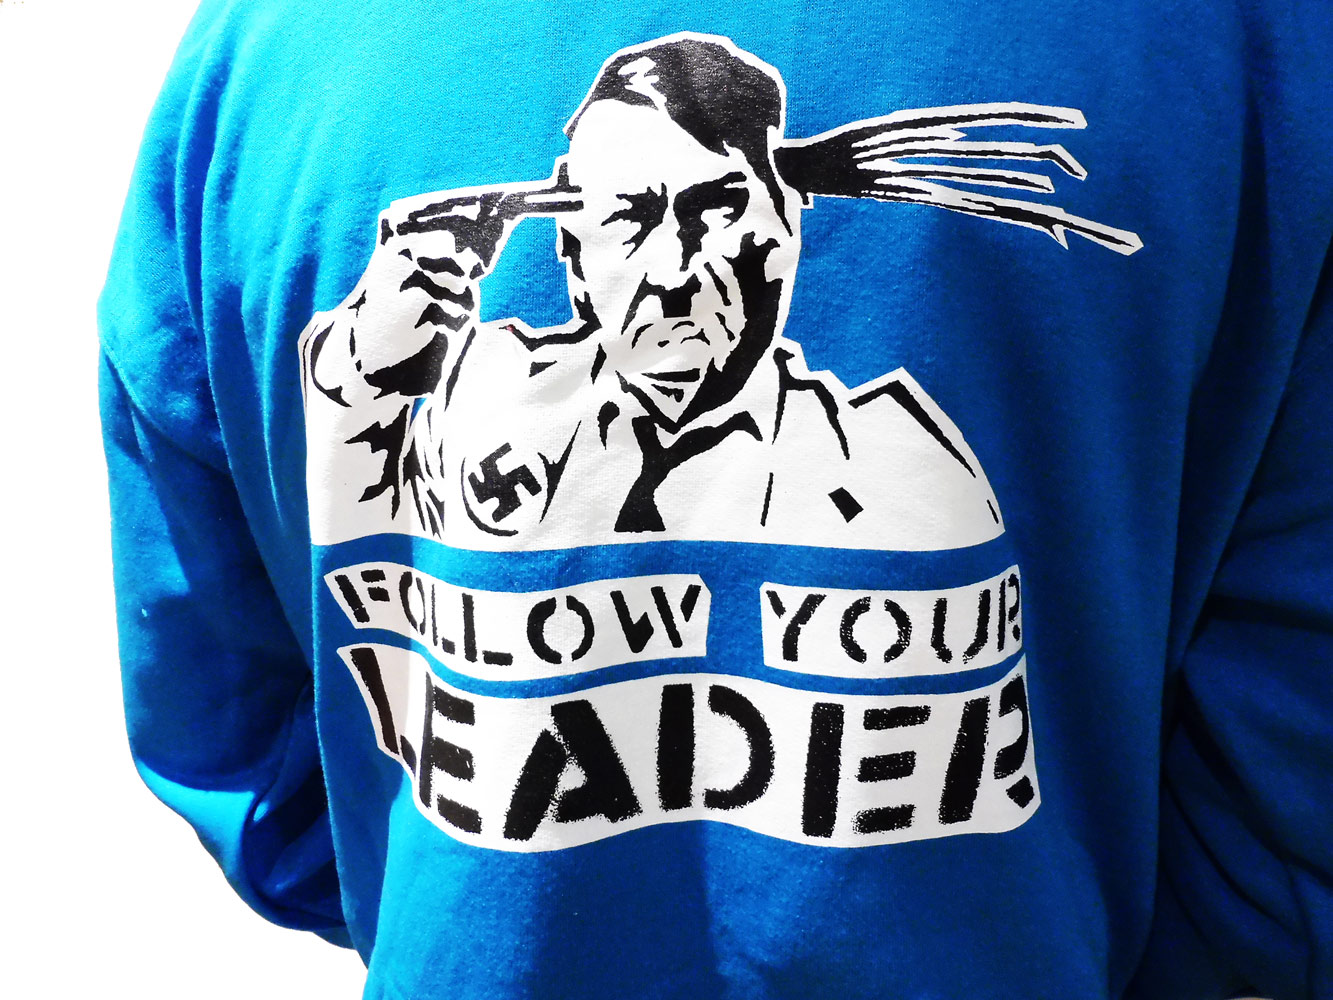 Follow Your Leader - Anti-Fa